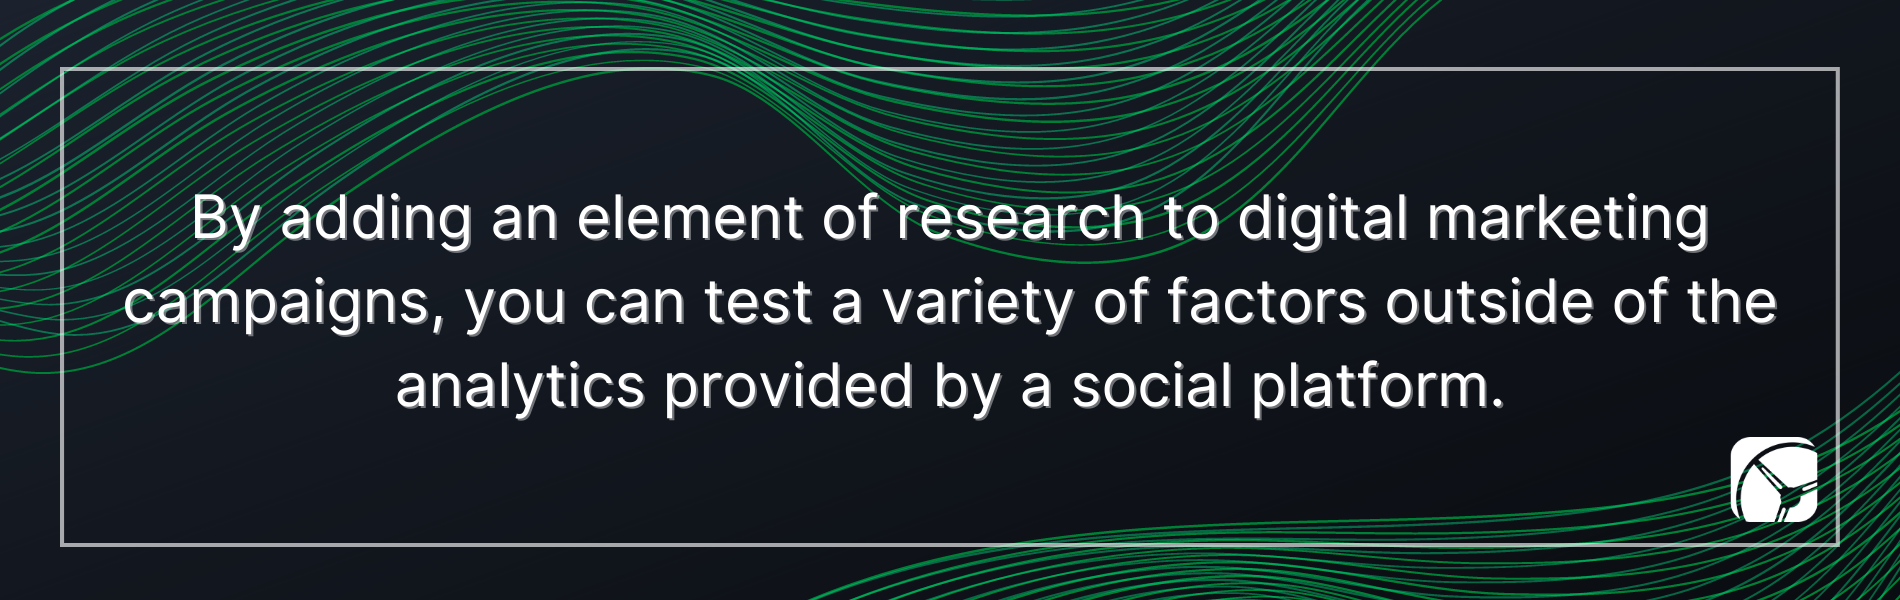 By adding an element of research to digital marketing campaigns you can test a variety of factors outside of the analytics provided by a social platform.